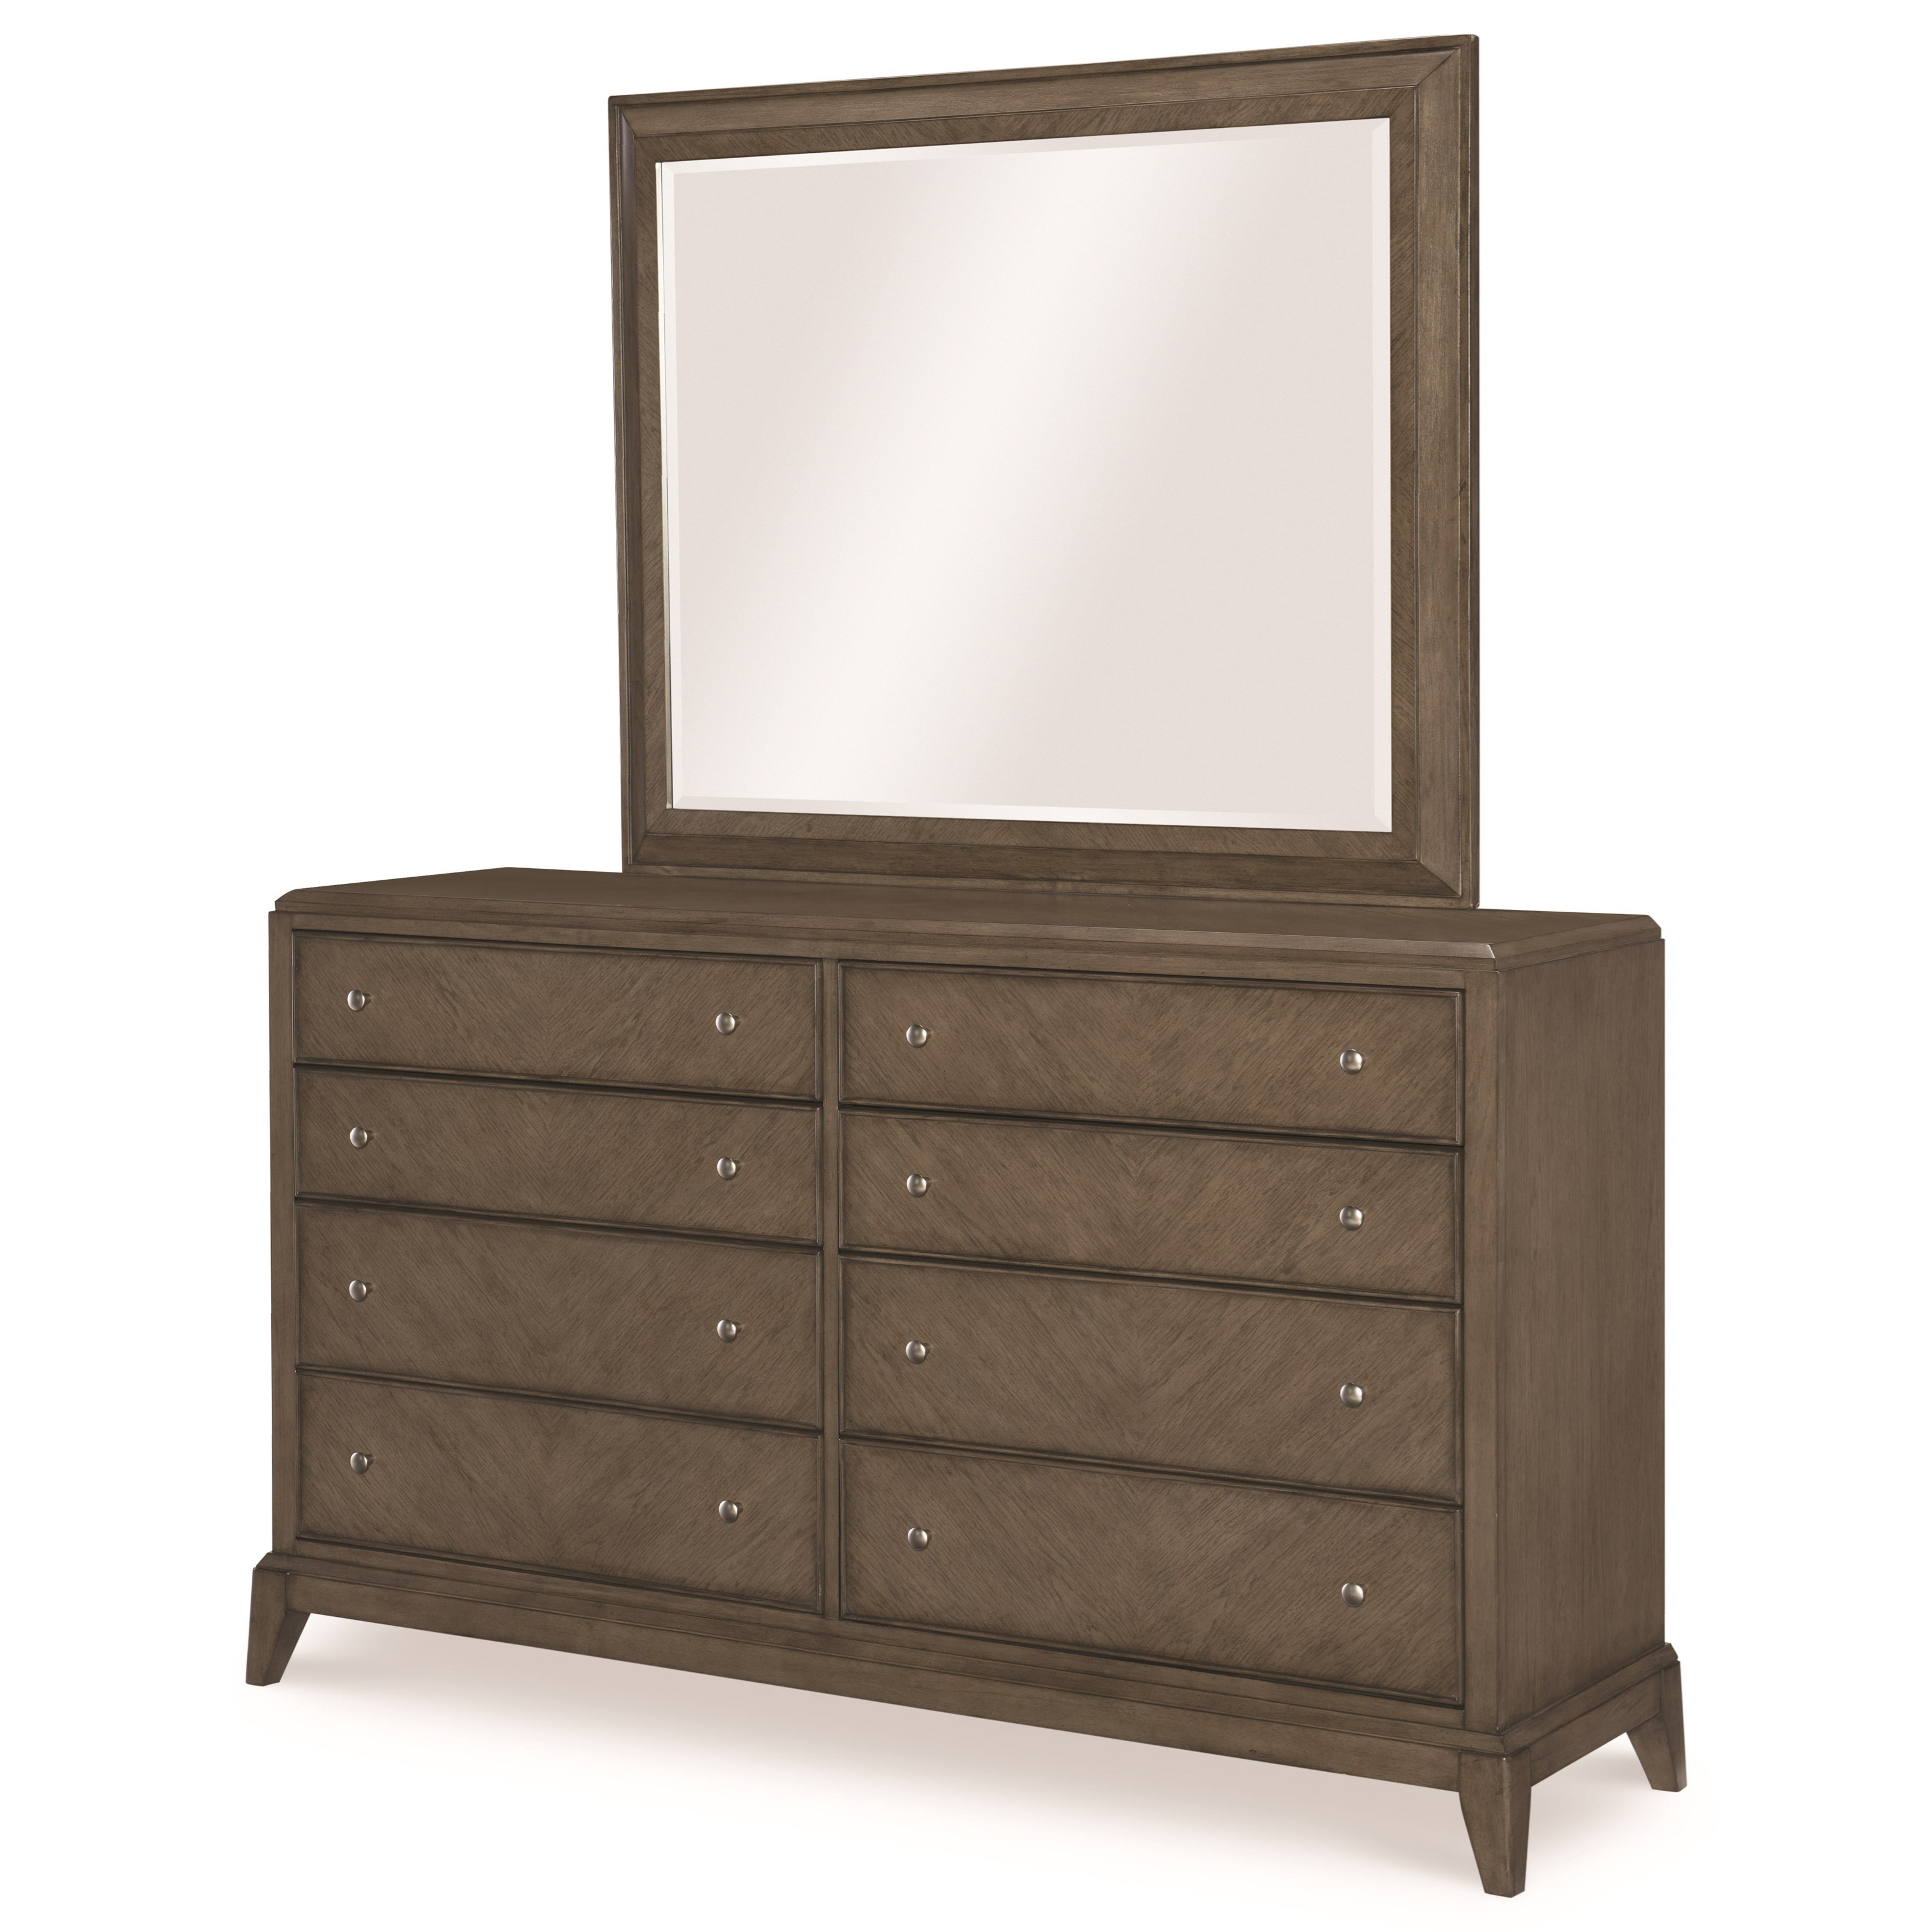 Legacy Classic Apex Dresser and Mirror Set - Item Number: 7700-1200+0200